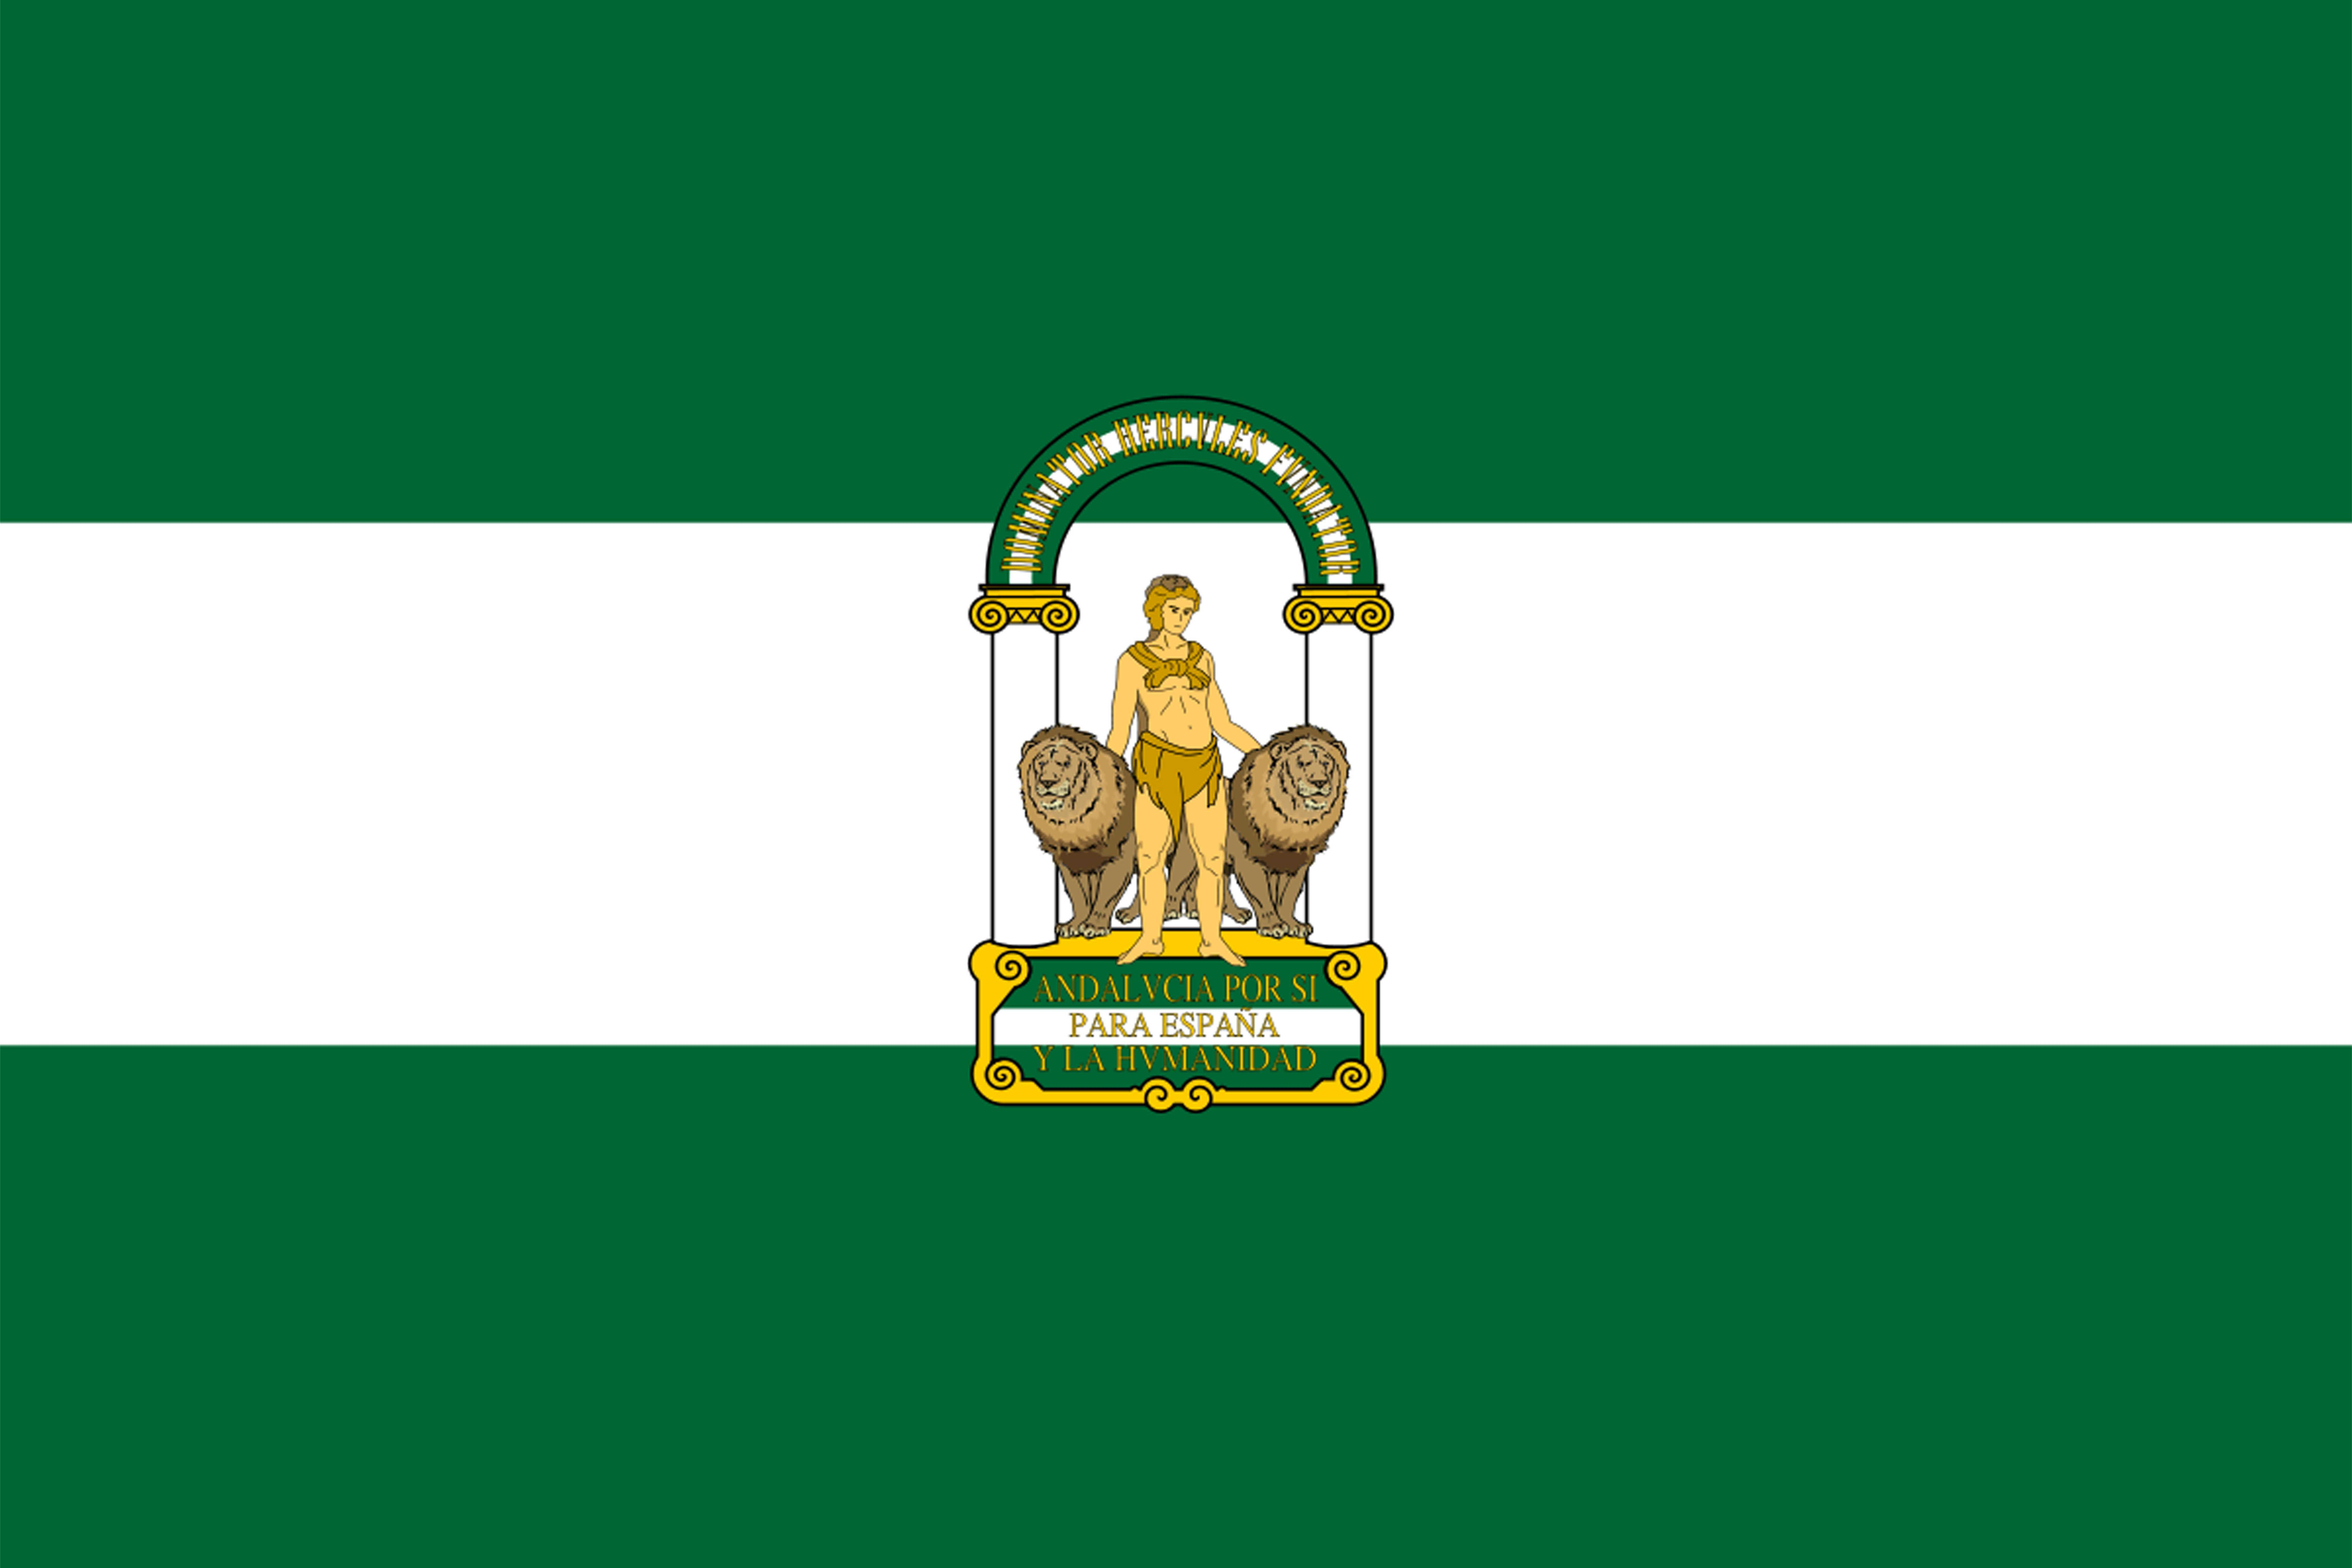 FLAGGE VON ANDALUSIEN<br />